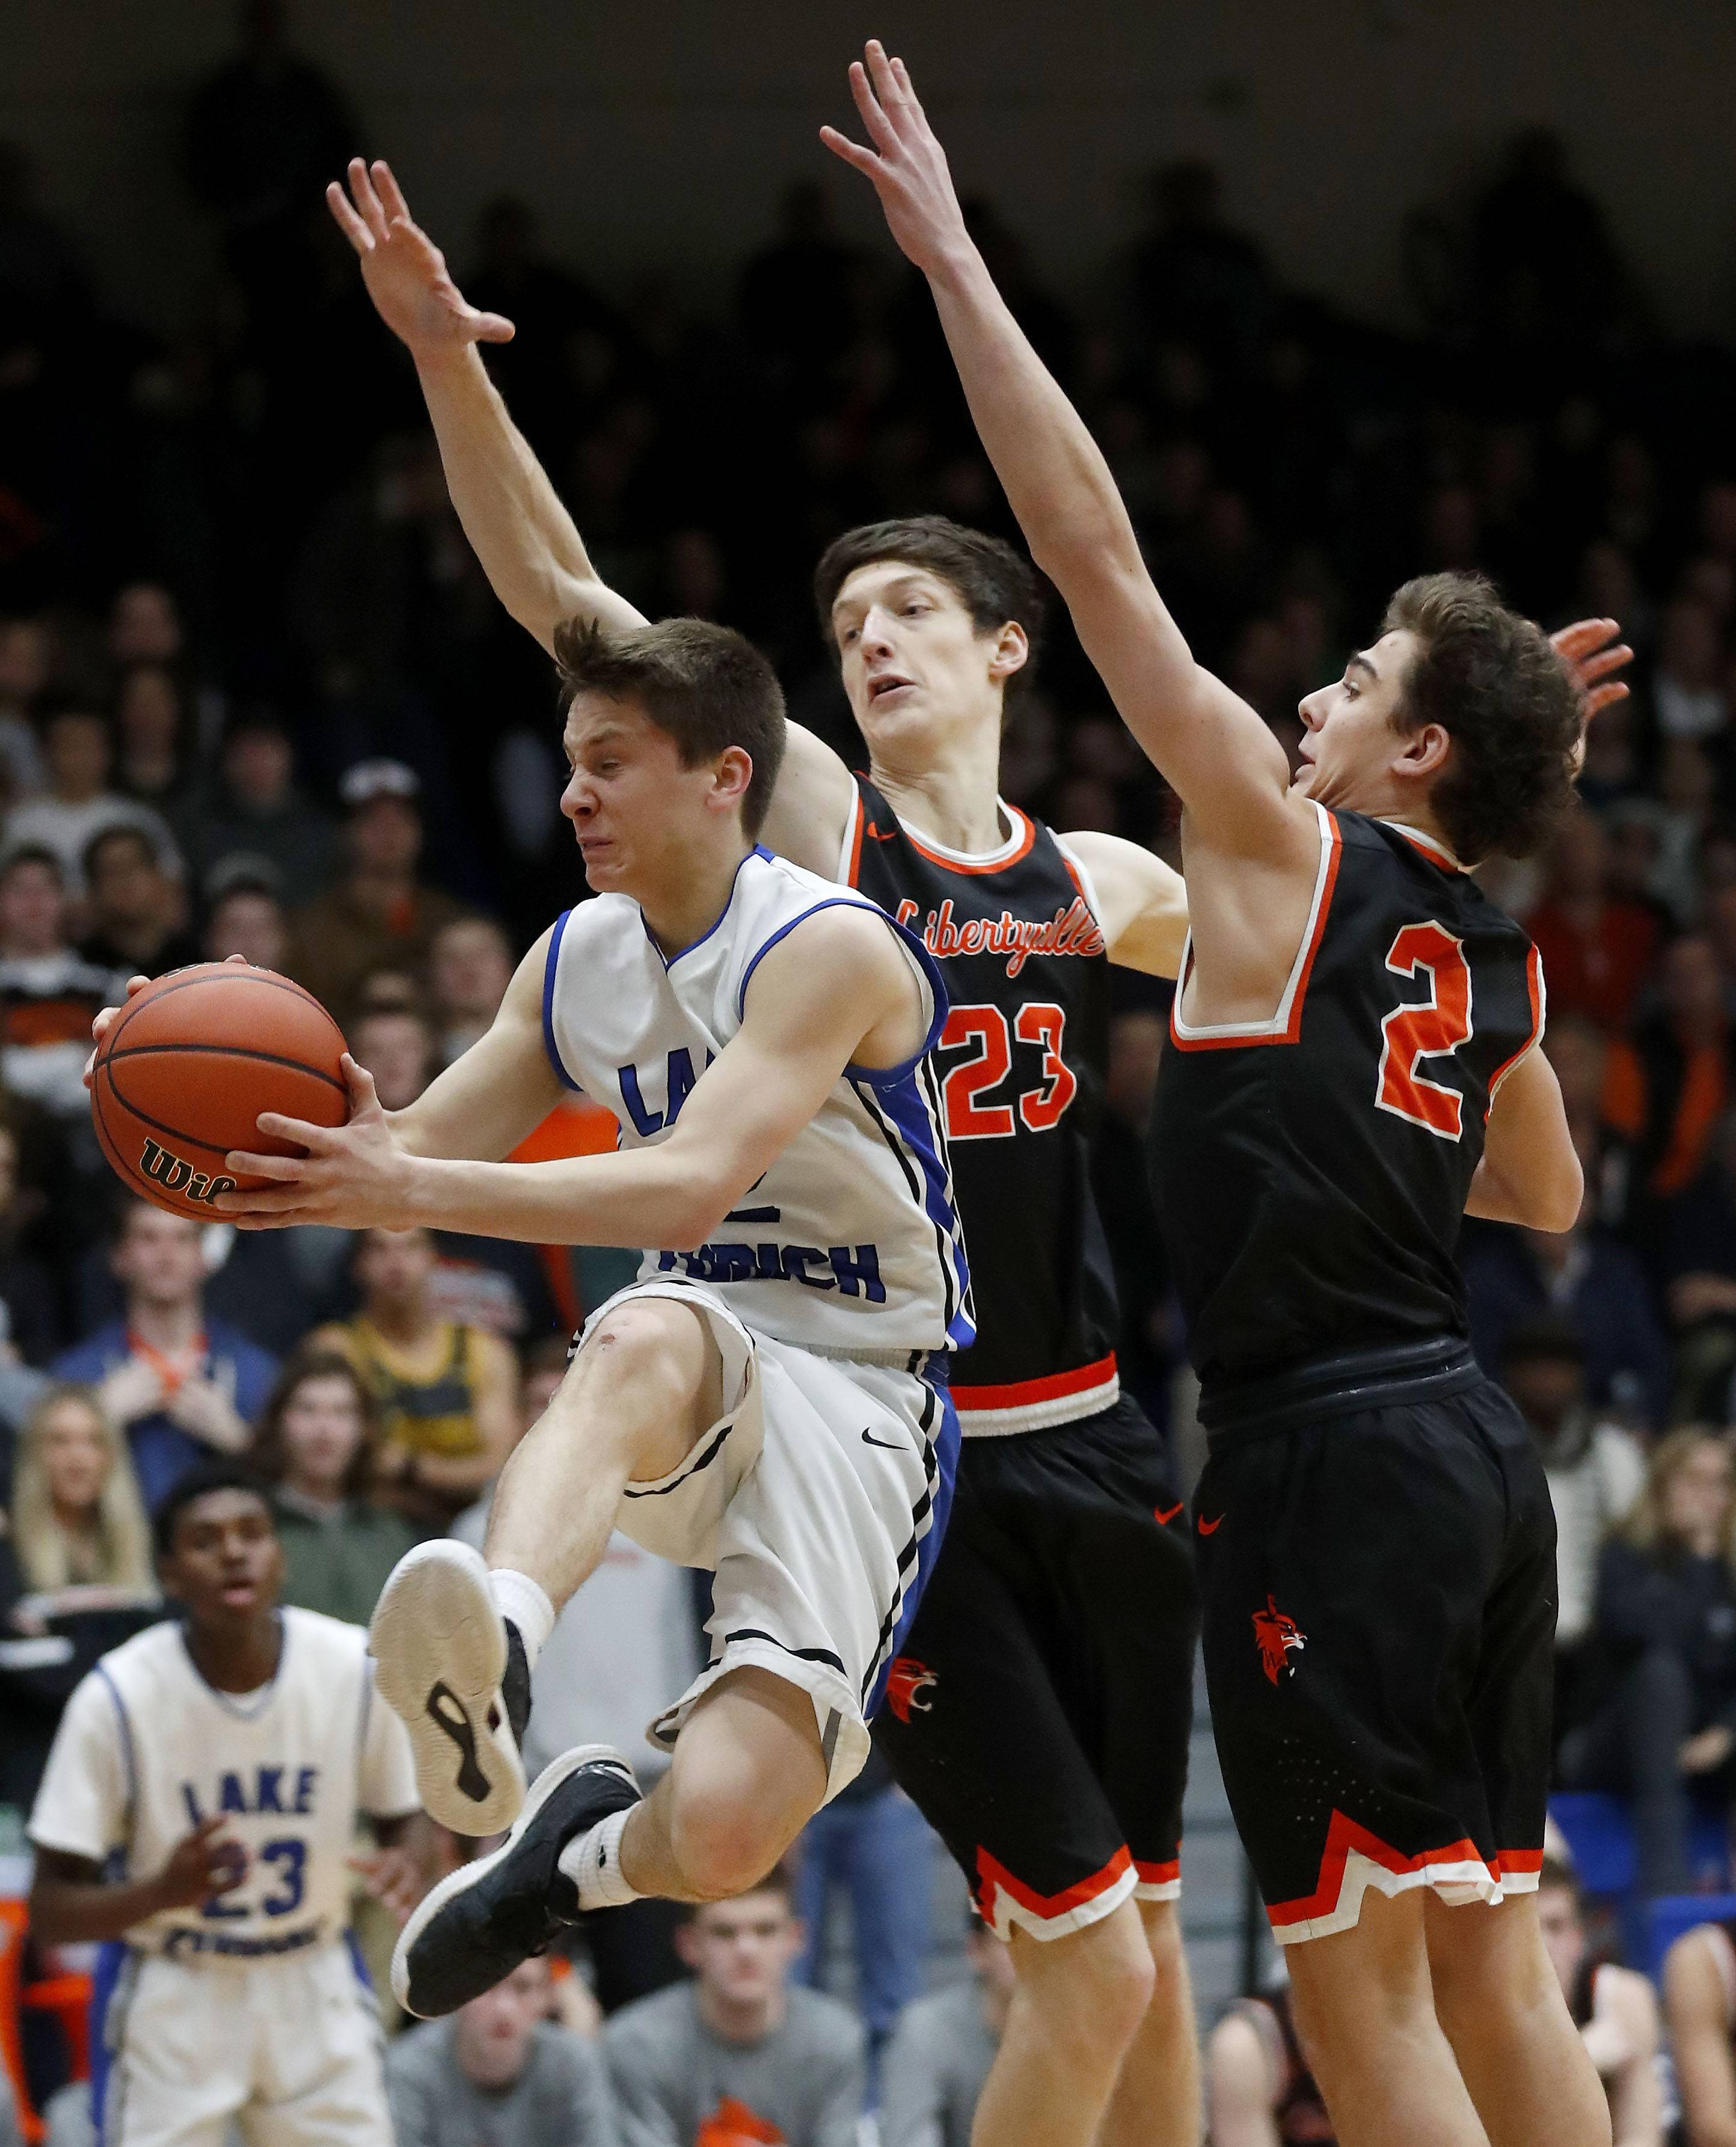 Lake Zurich's JR Cison, left, drives on Libertyville's Drew Peterson and Brian Wilterdink during the Class 4A sectional semifinal at Lake Zurich High School on Tuesday.